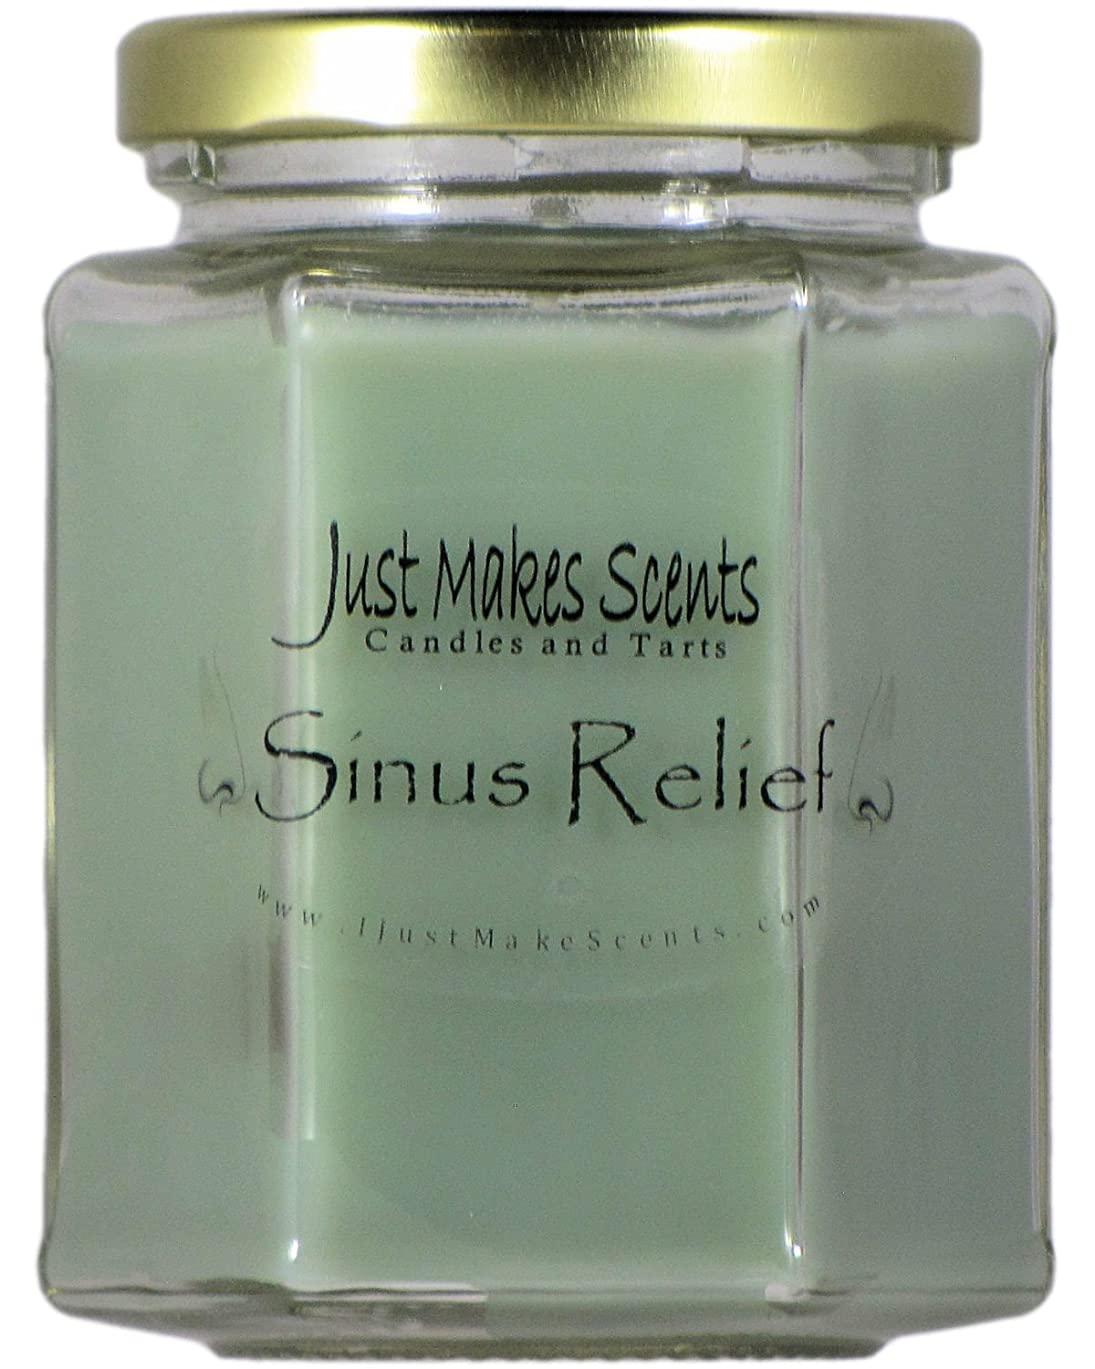 著者杖ベッドを作るSinus Relief ( Vicks Vapor Rubタイプ)香りつきBlended Soy Candle by Just Makes Scents ( 8オンス)